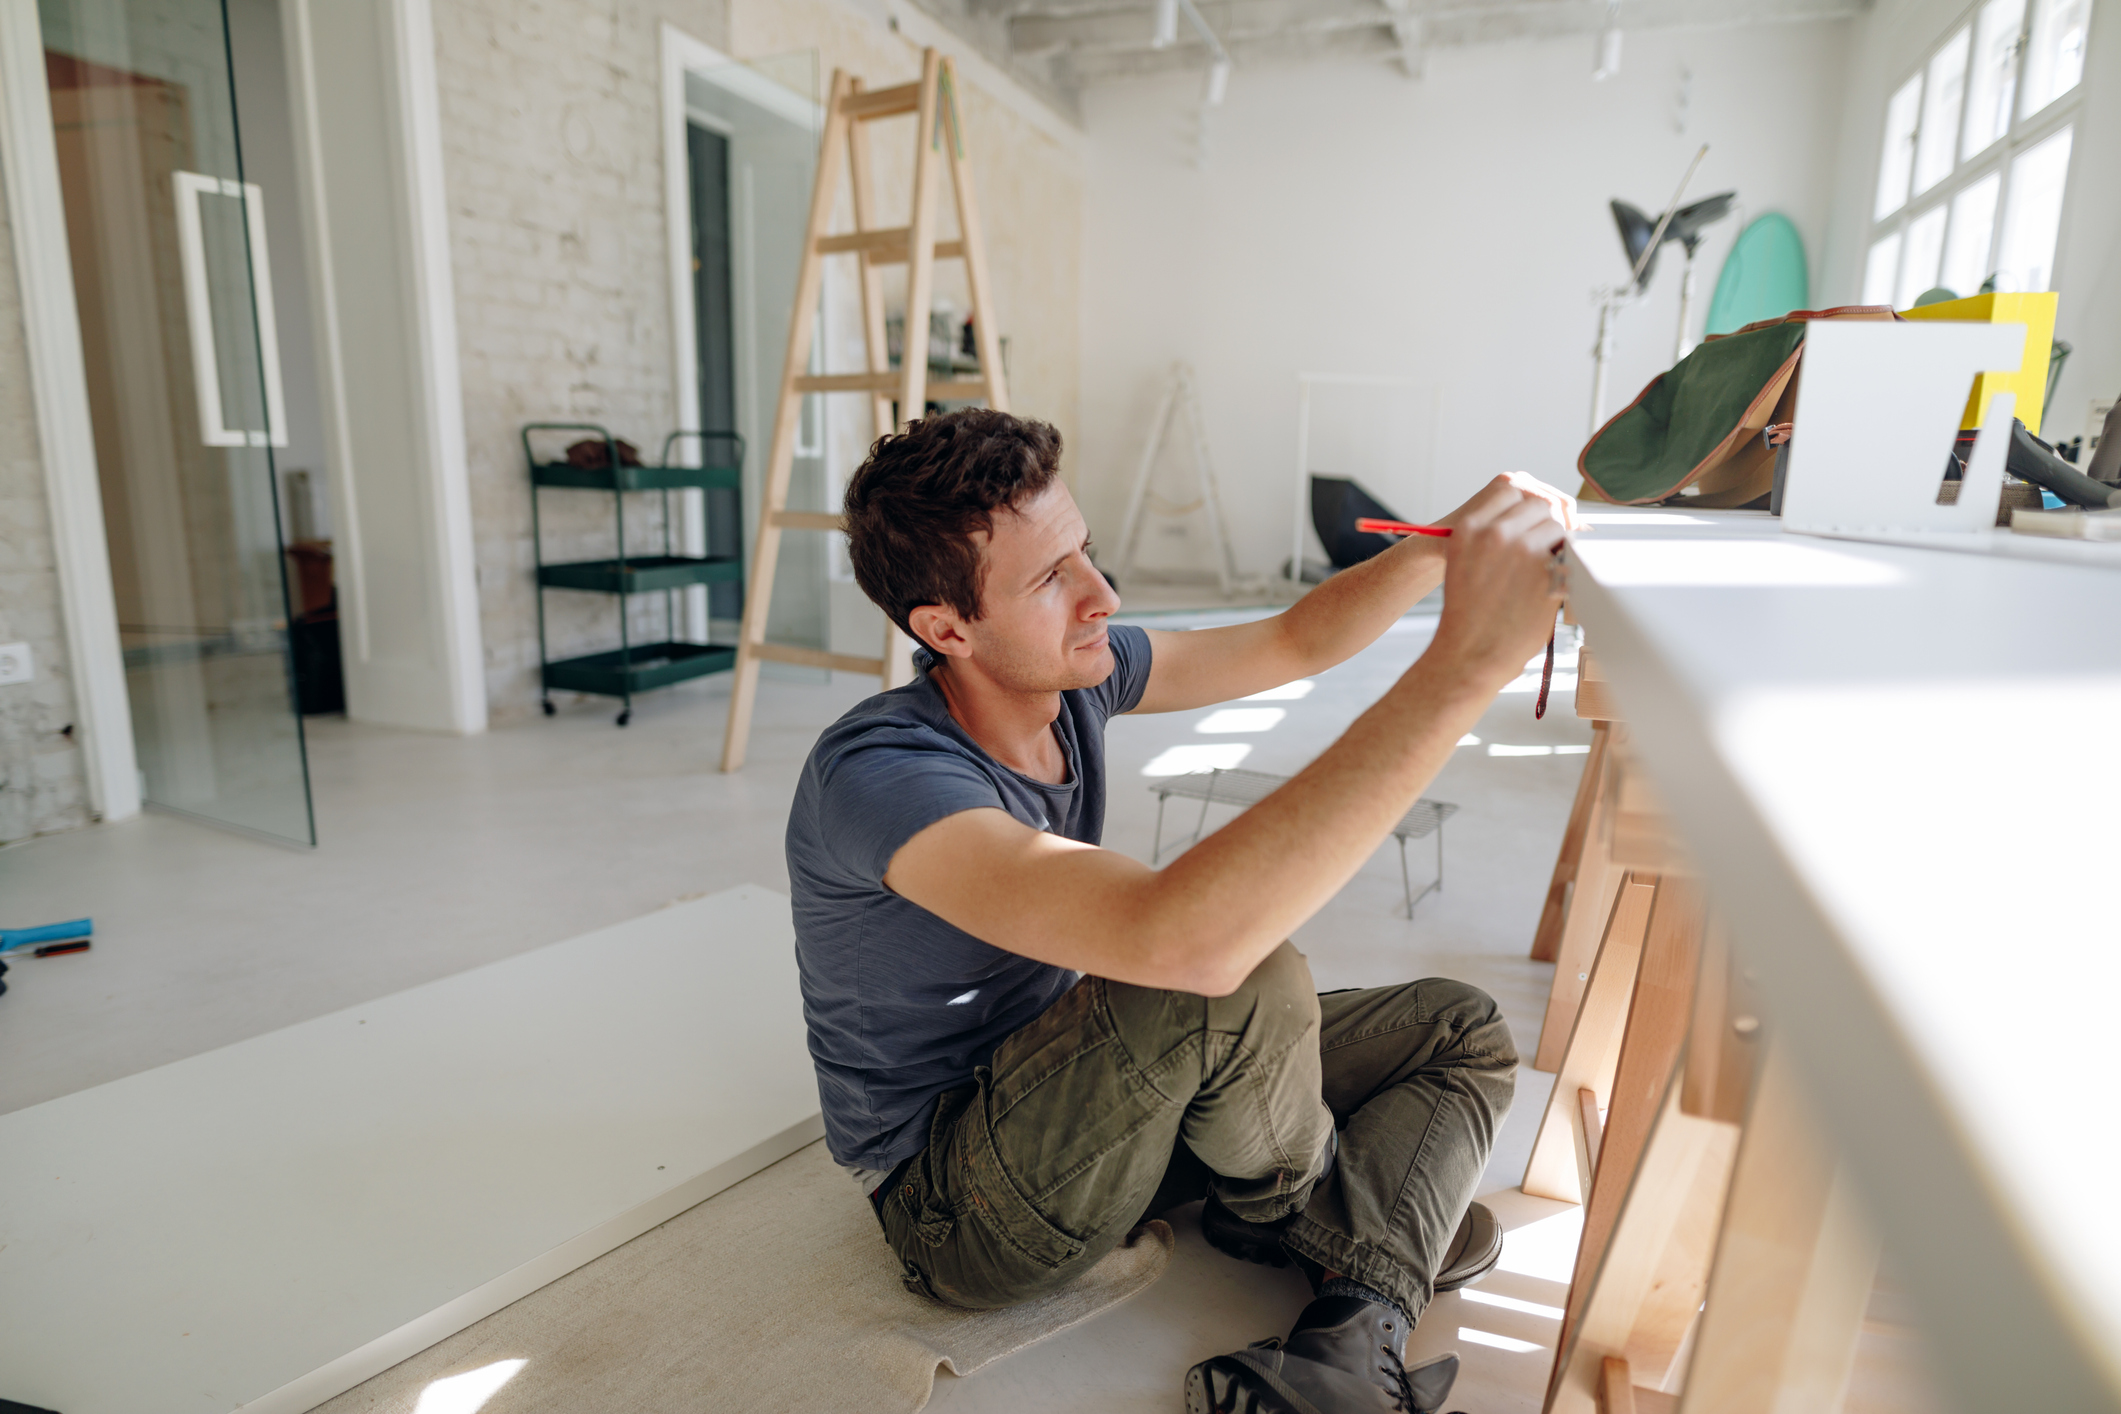 Leaning into DIY: How Your Business Can Take Advantage of This Rising Trend